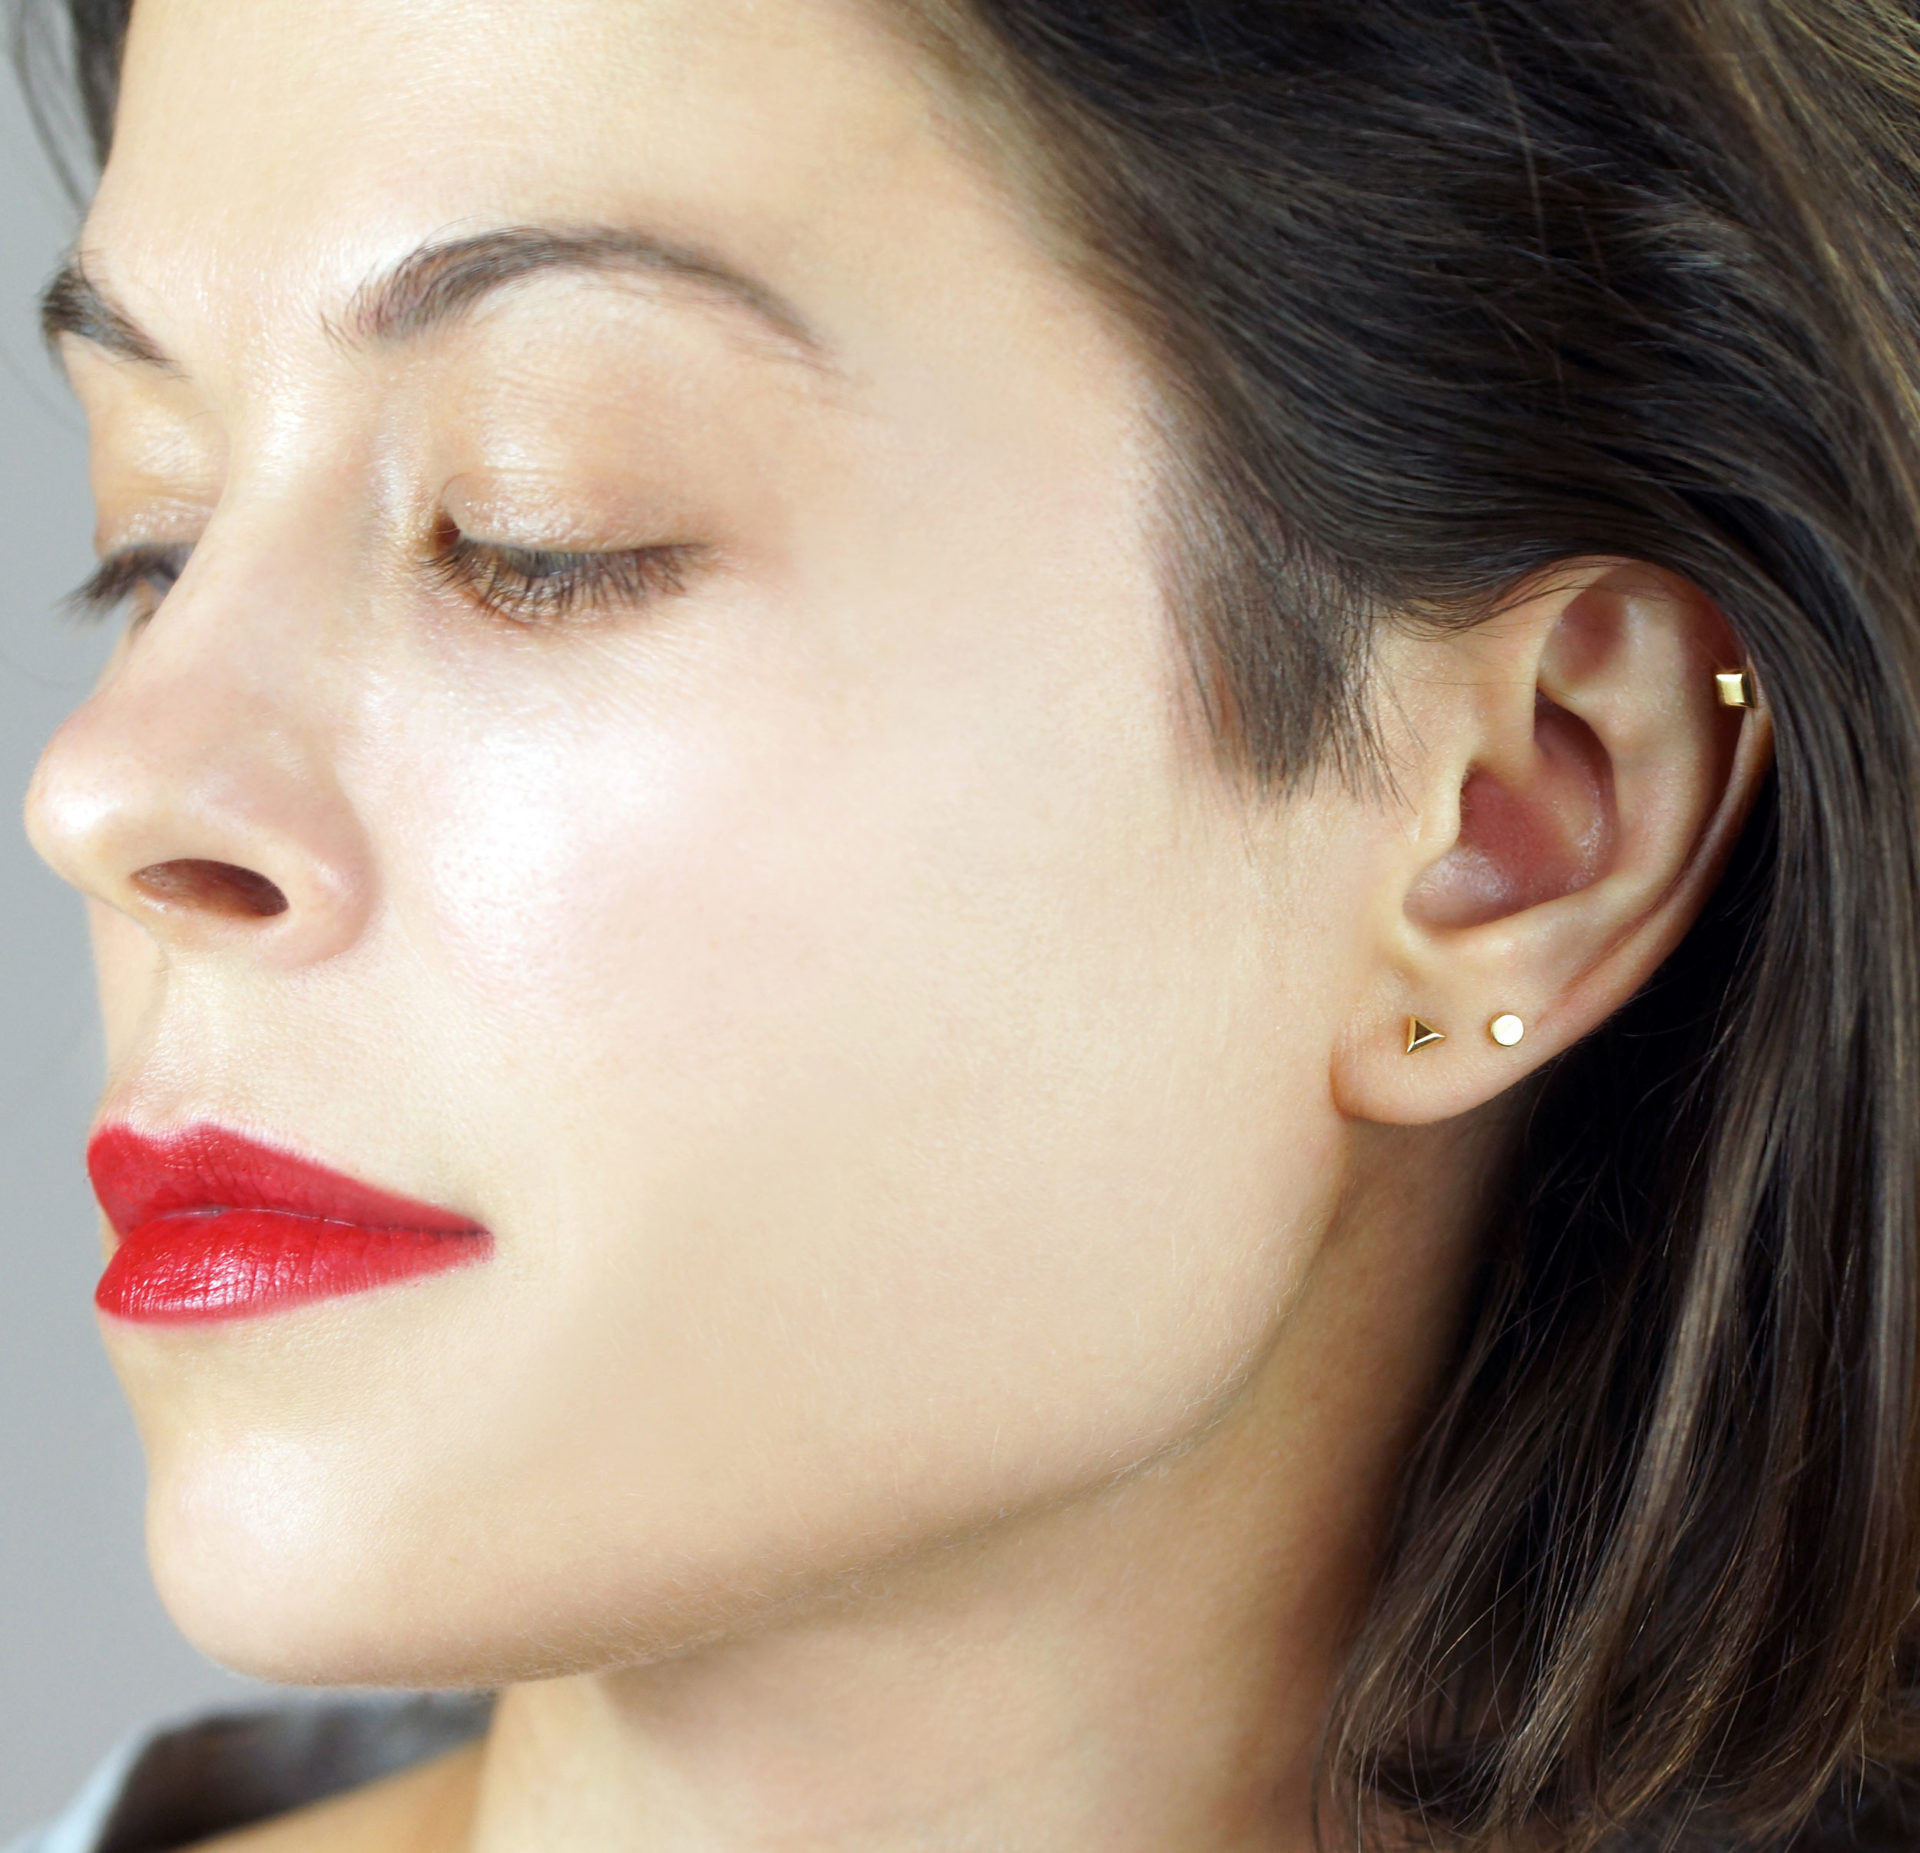 minimalist geametry helix tragus cartilage piercing jewelry lena cohen london tash curated ear fashion trends 2021